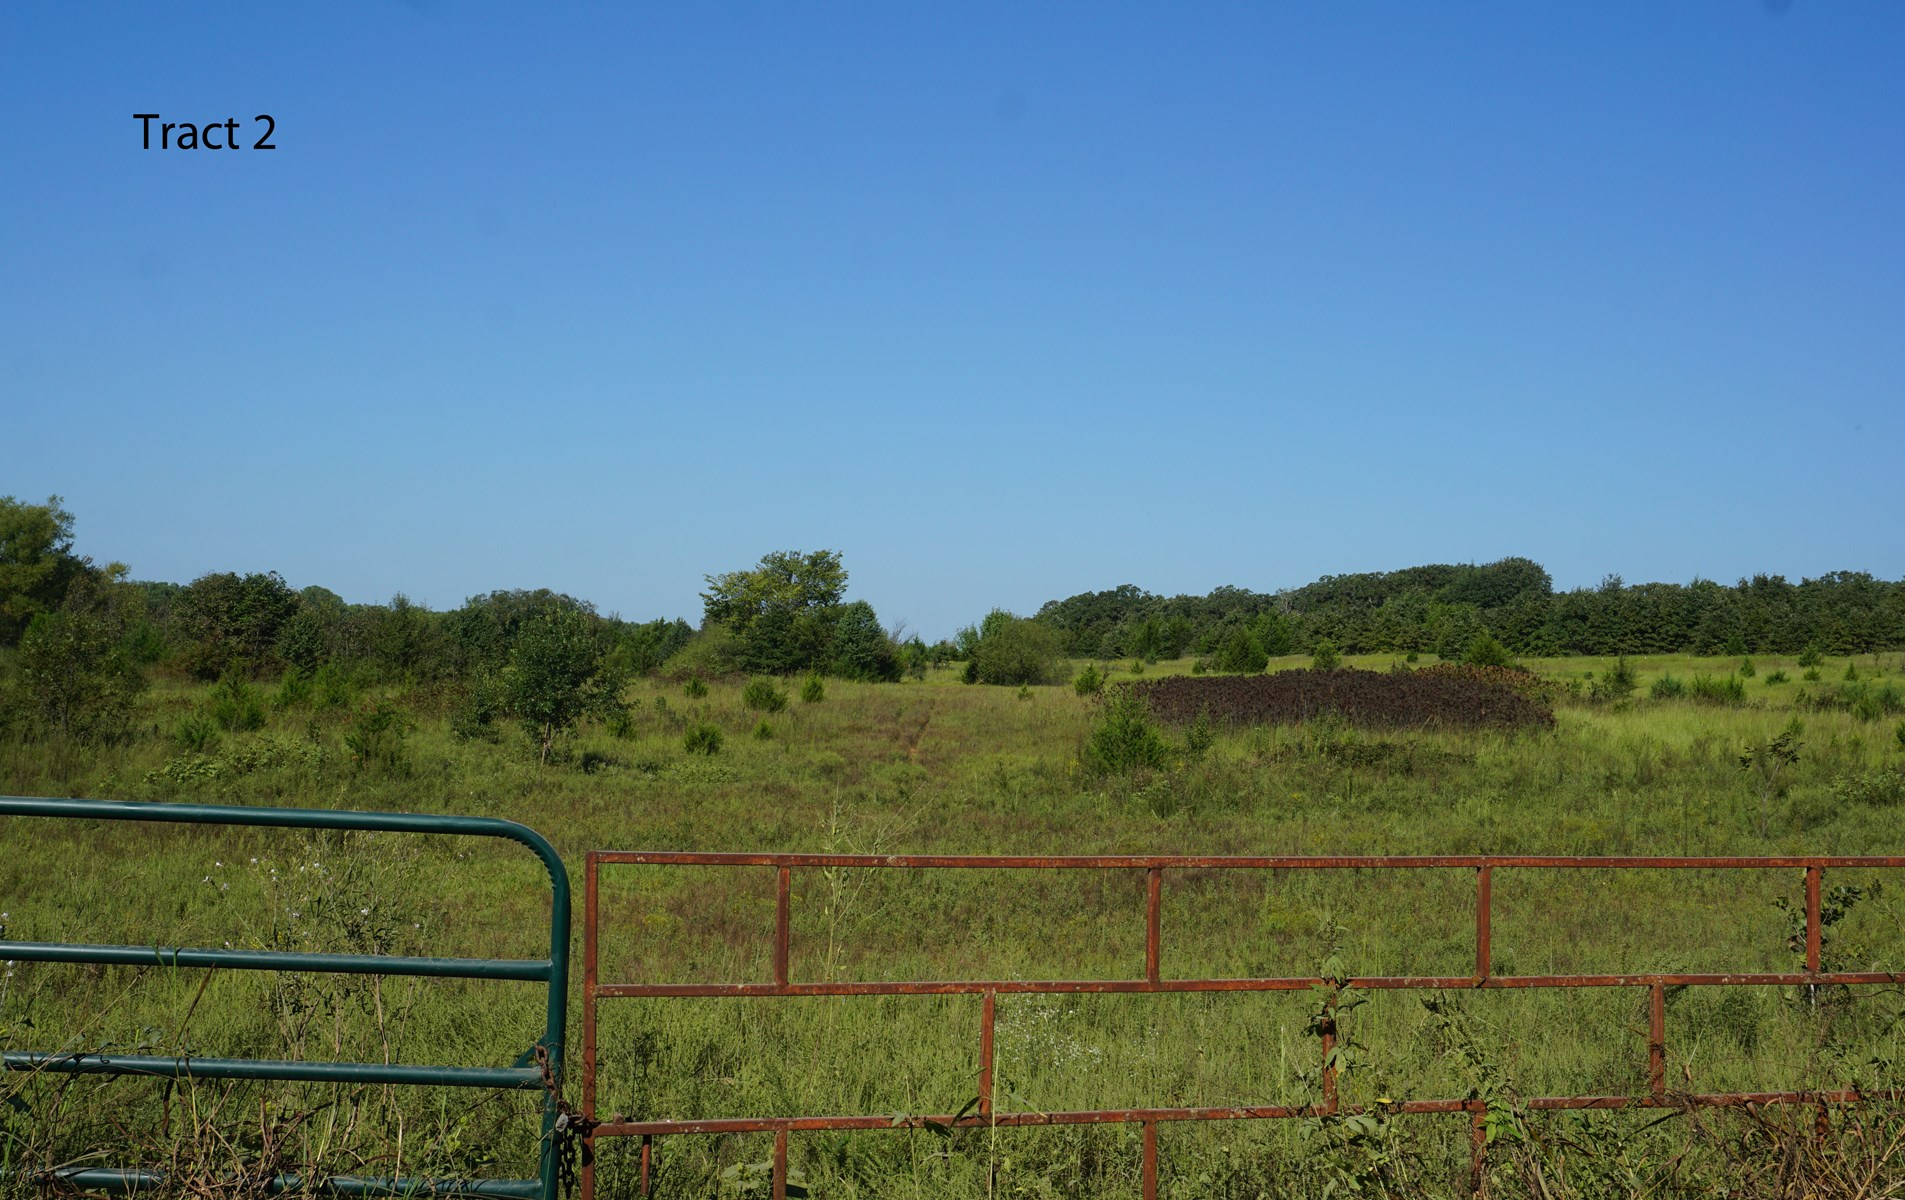 Recreational / Hunting property No Reserve Auction, Meeker